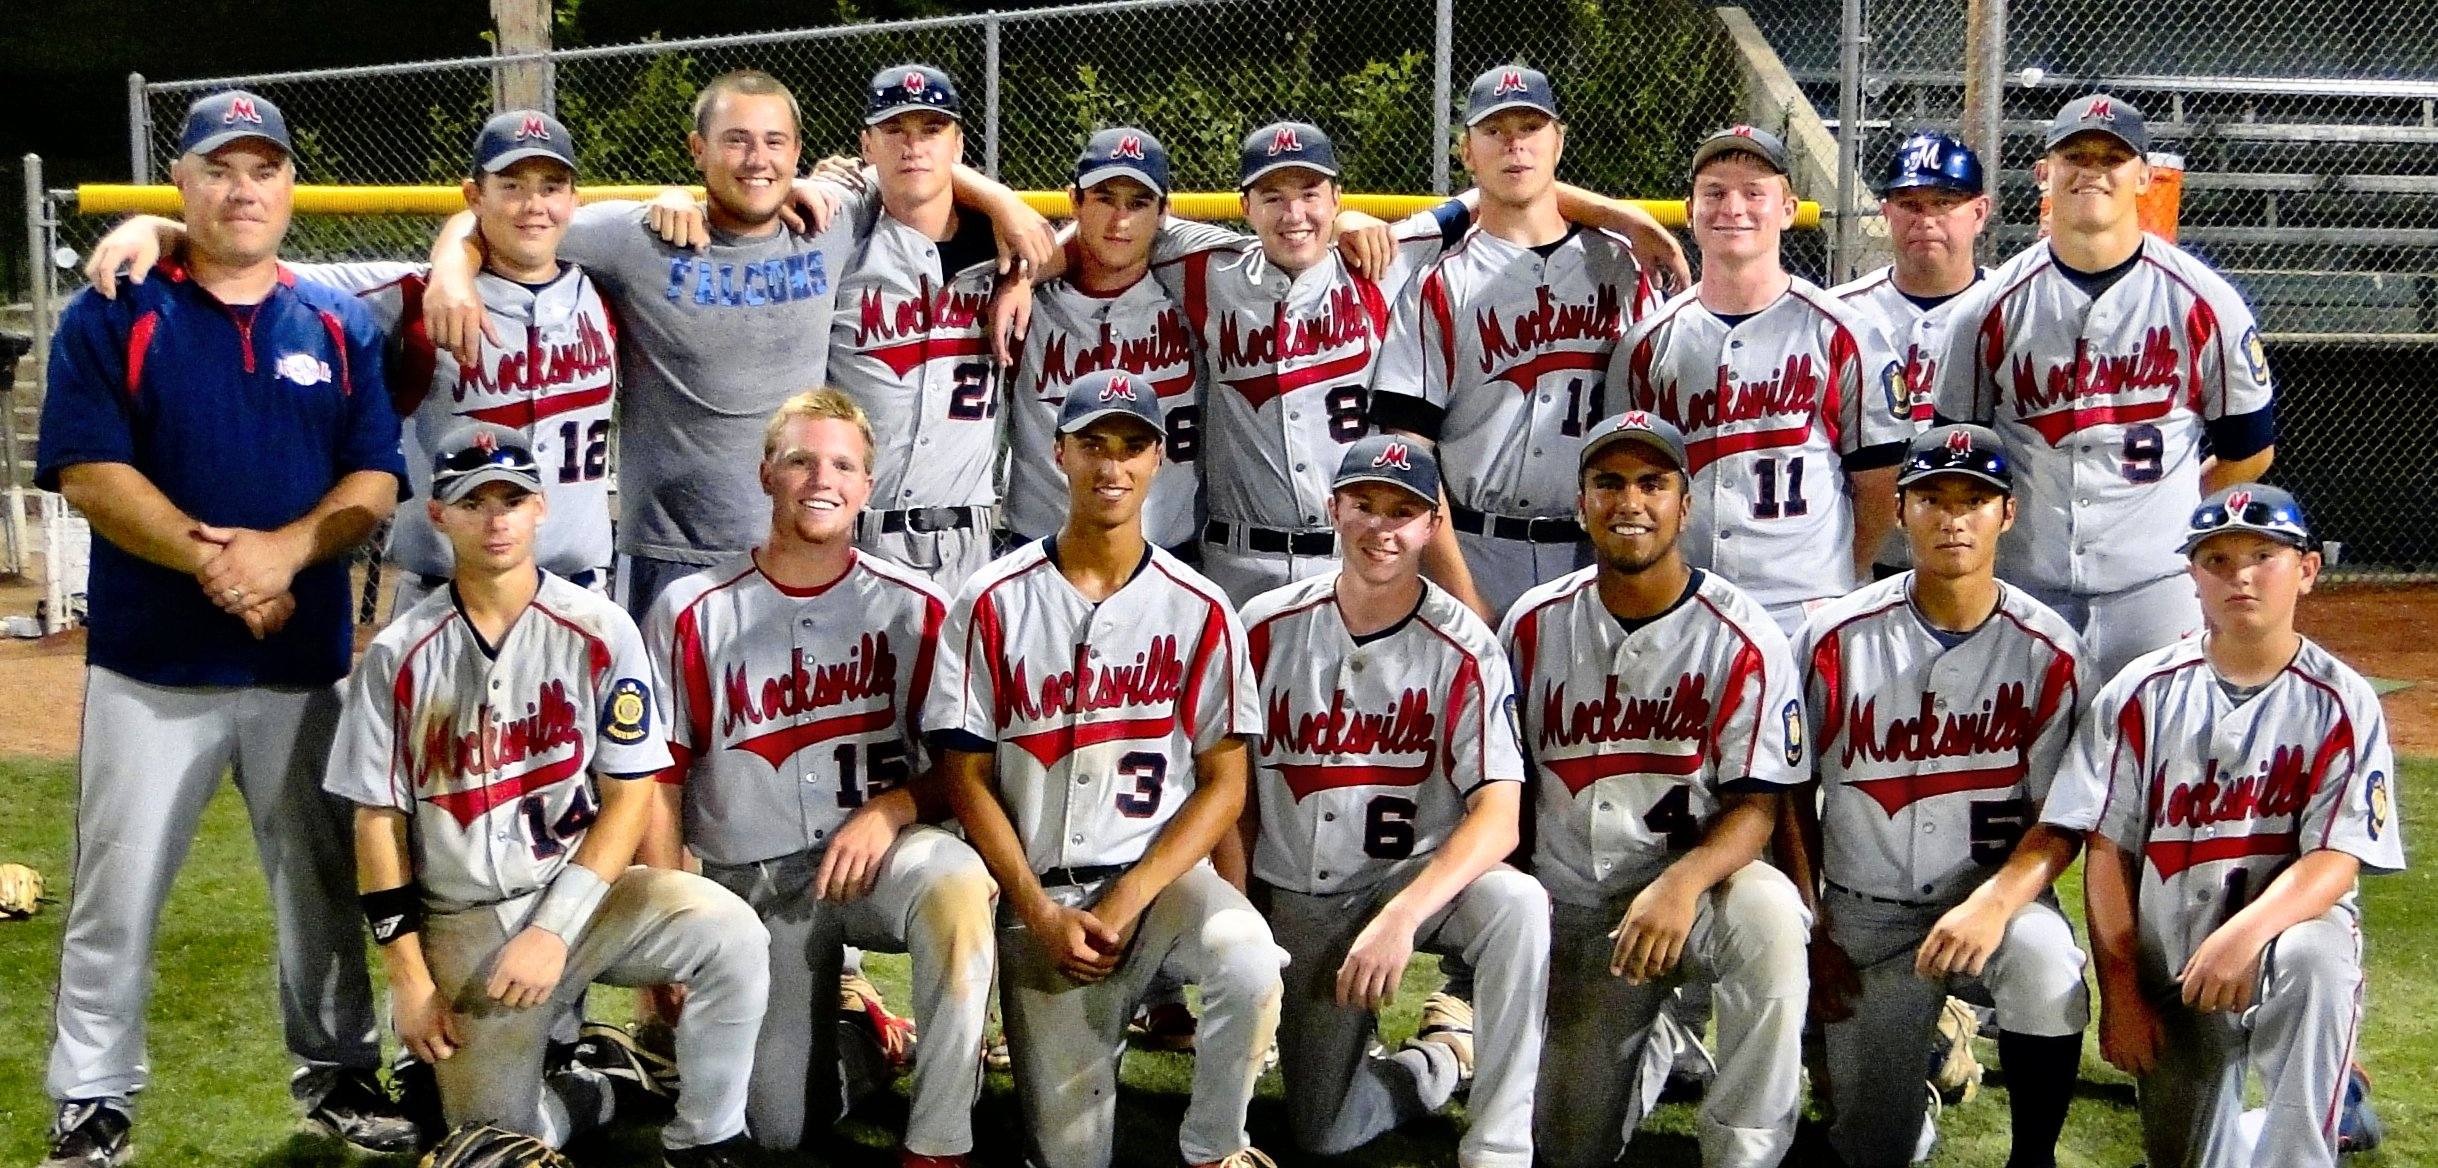 Mocksville-Davie-American-Legion-2014-sr-team